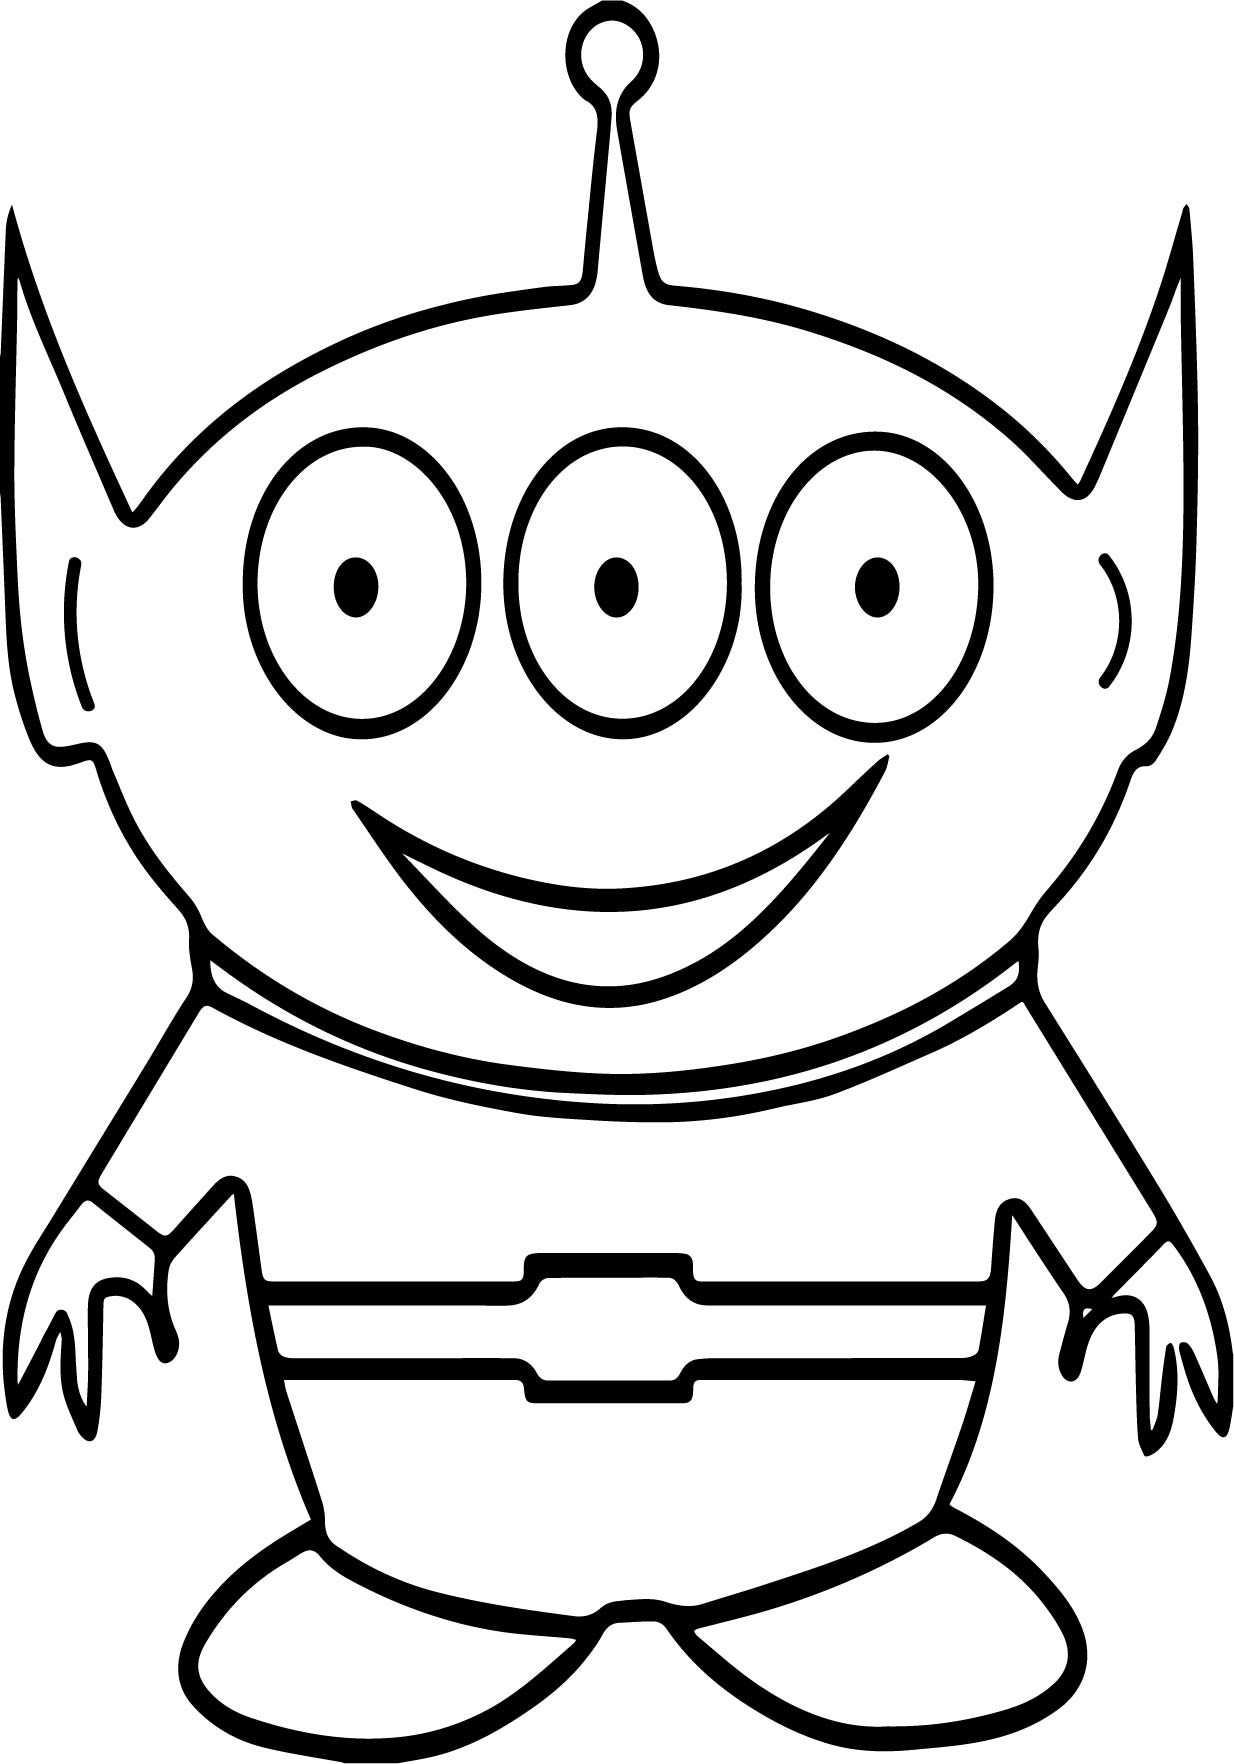 Three Eye Cute Alien Coloring Page